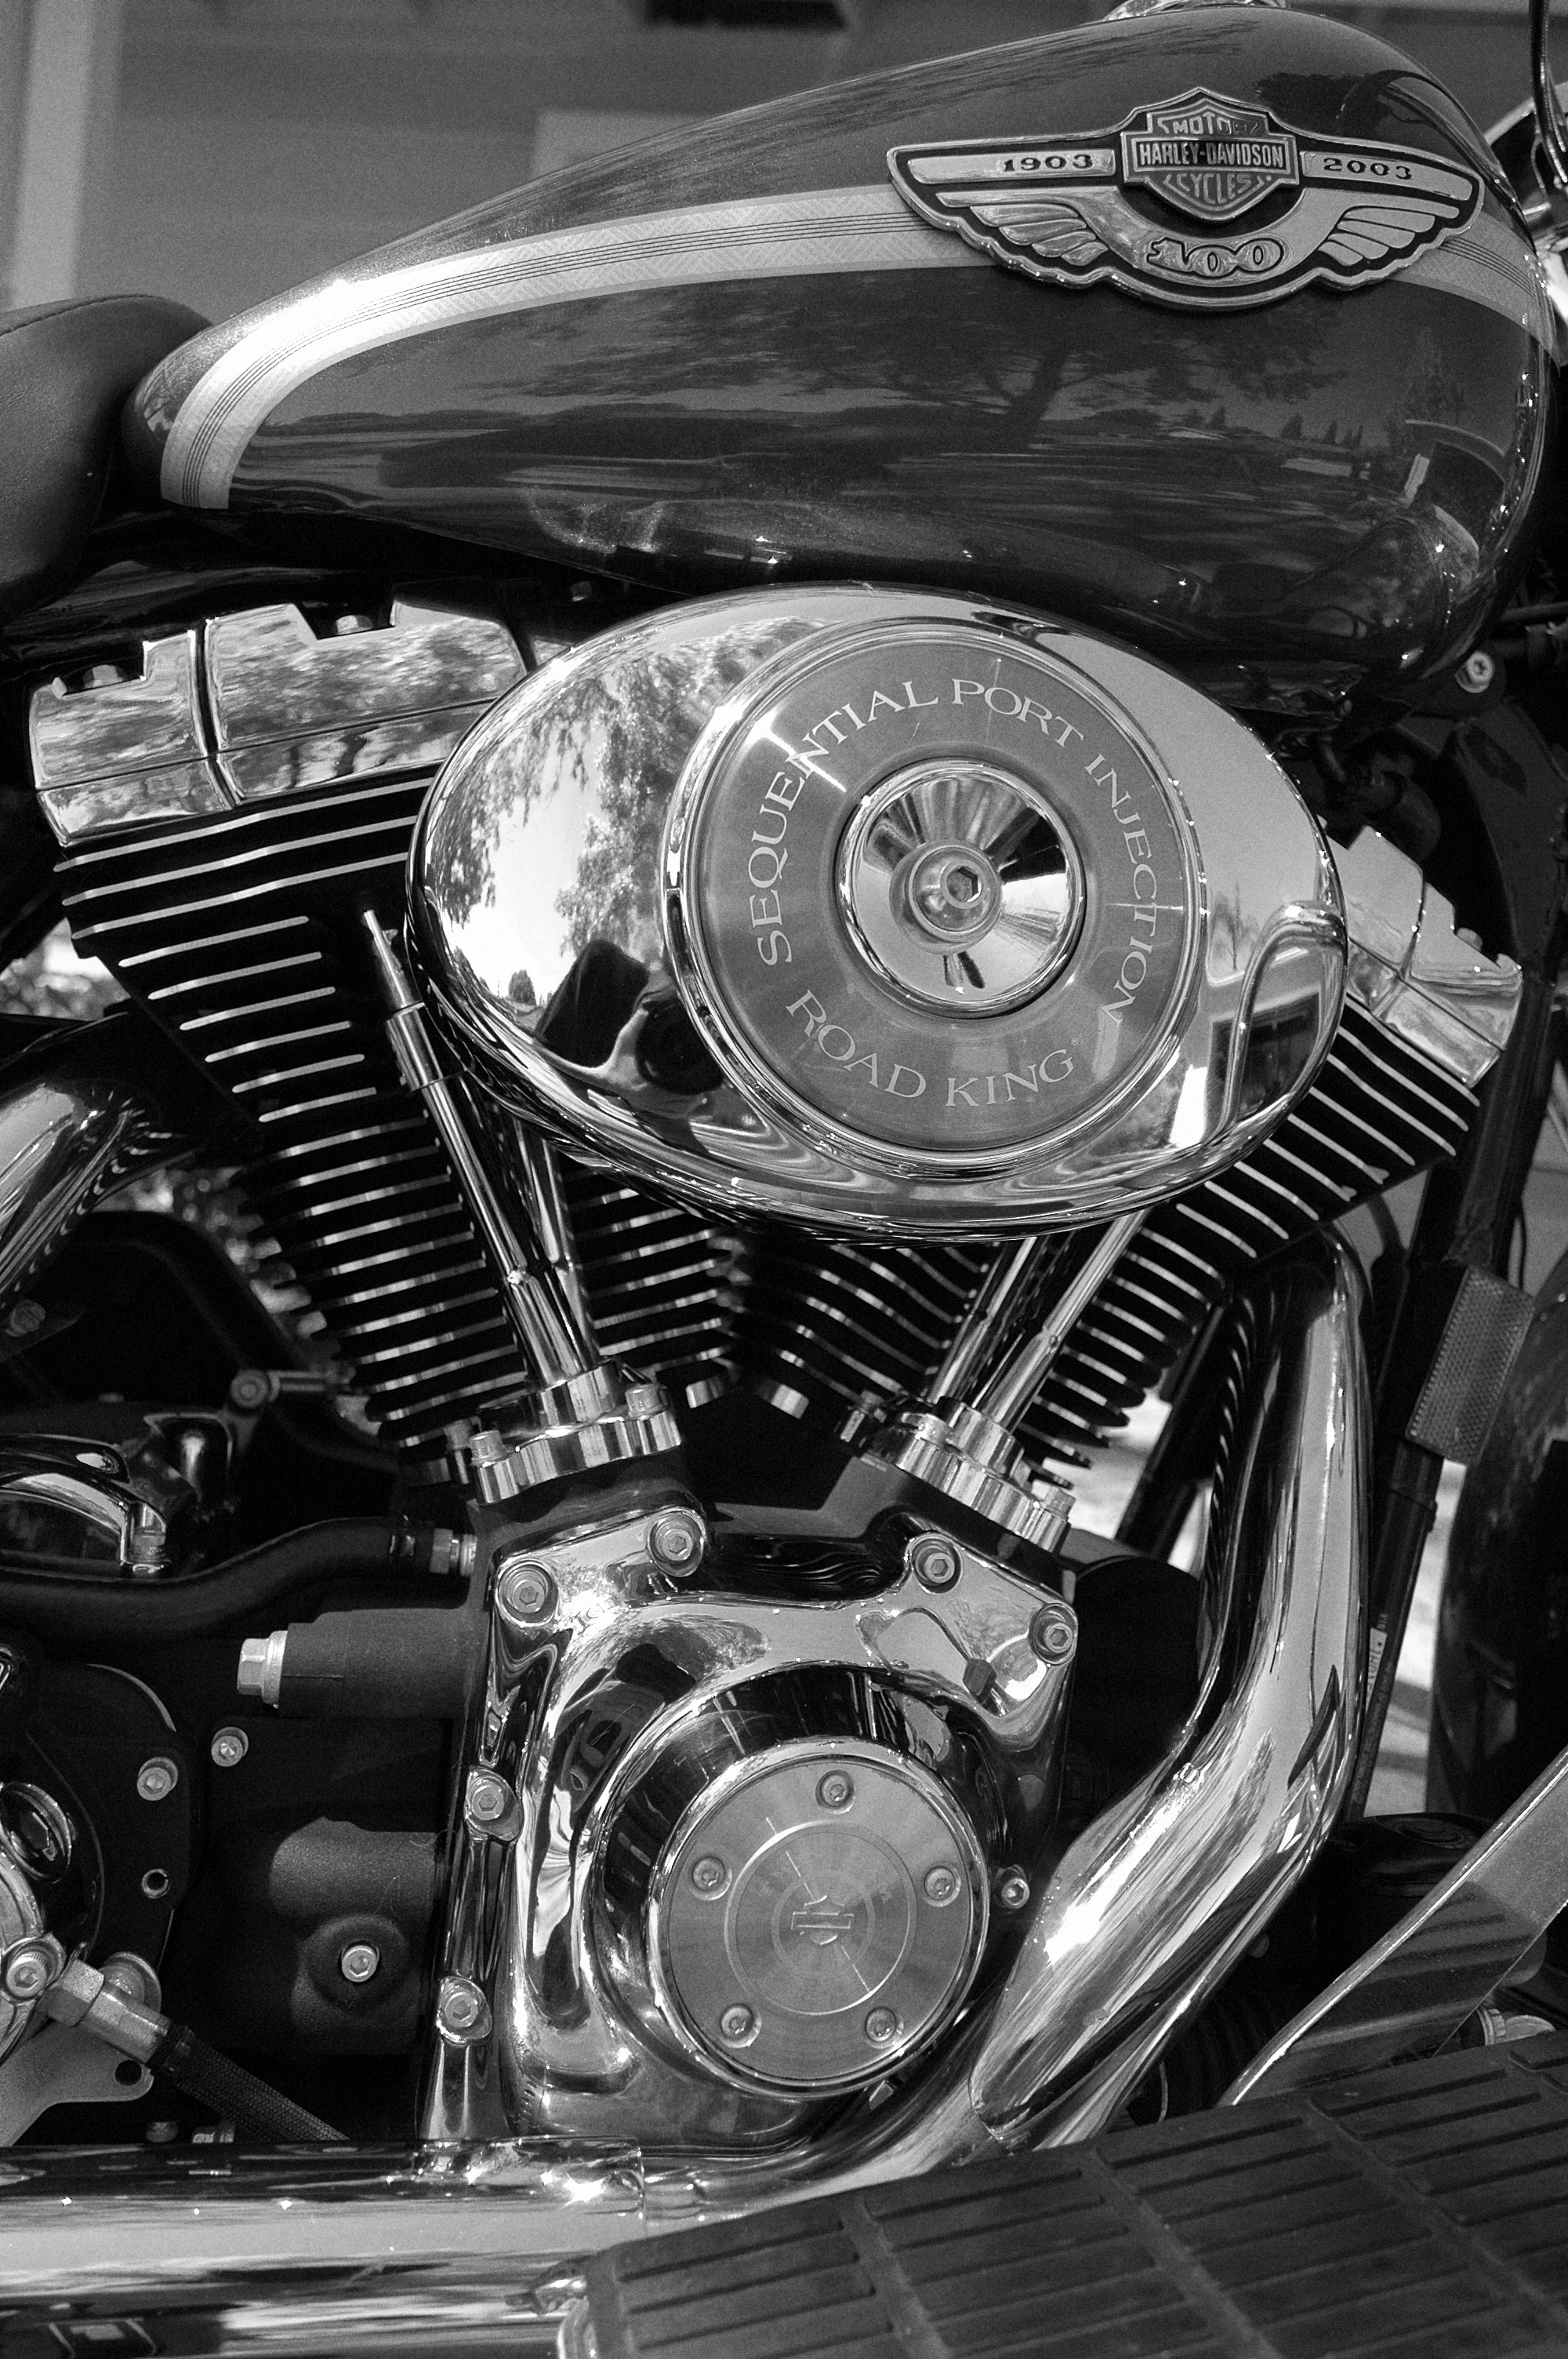 Chopper Bikes For Sale Near Kenosha Wi Motorcycle engines edit